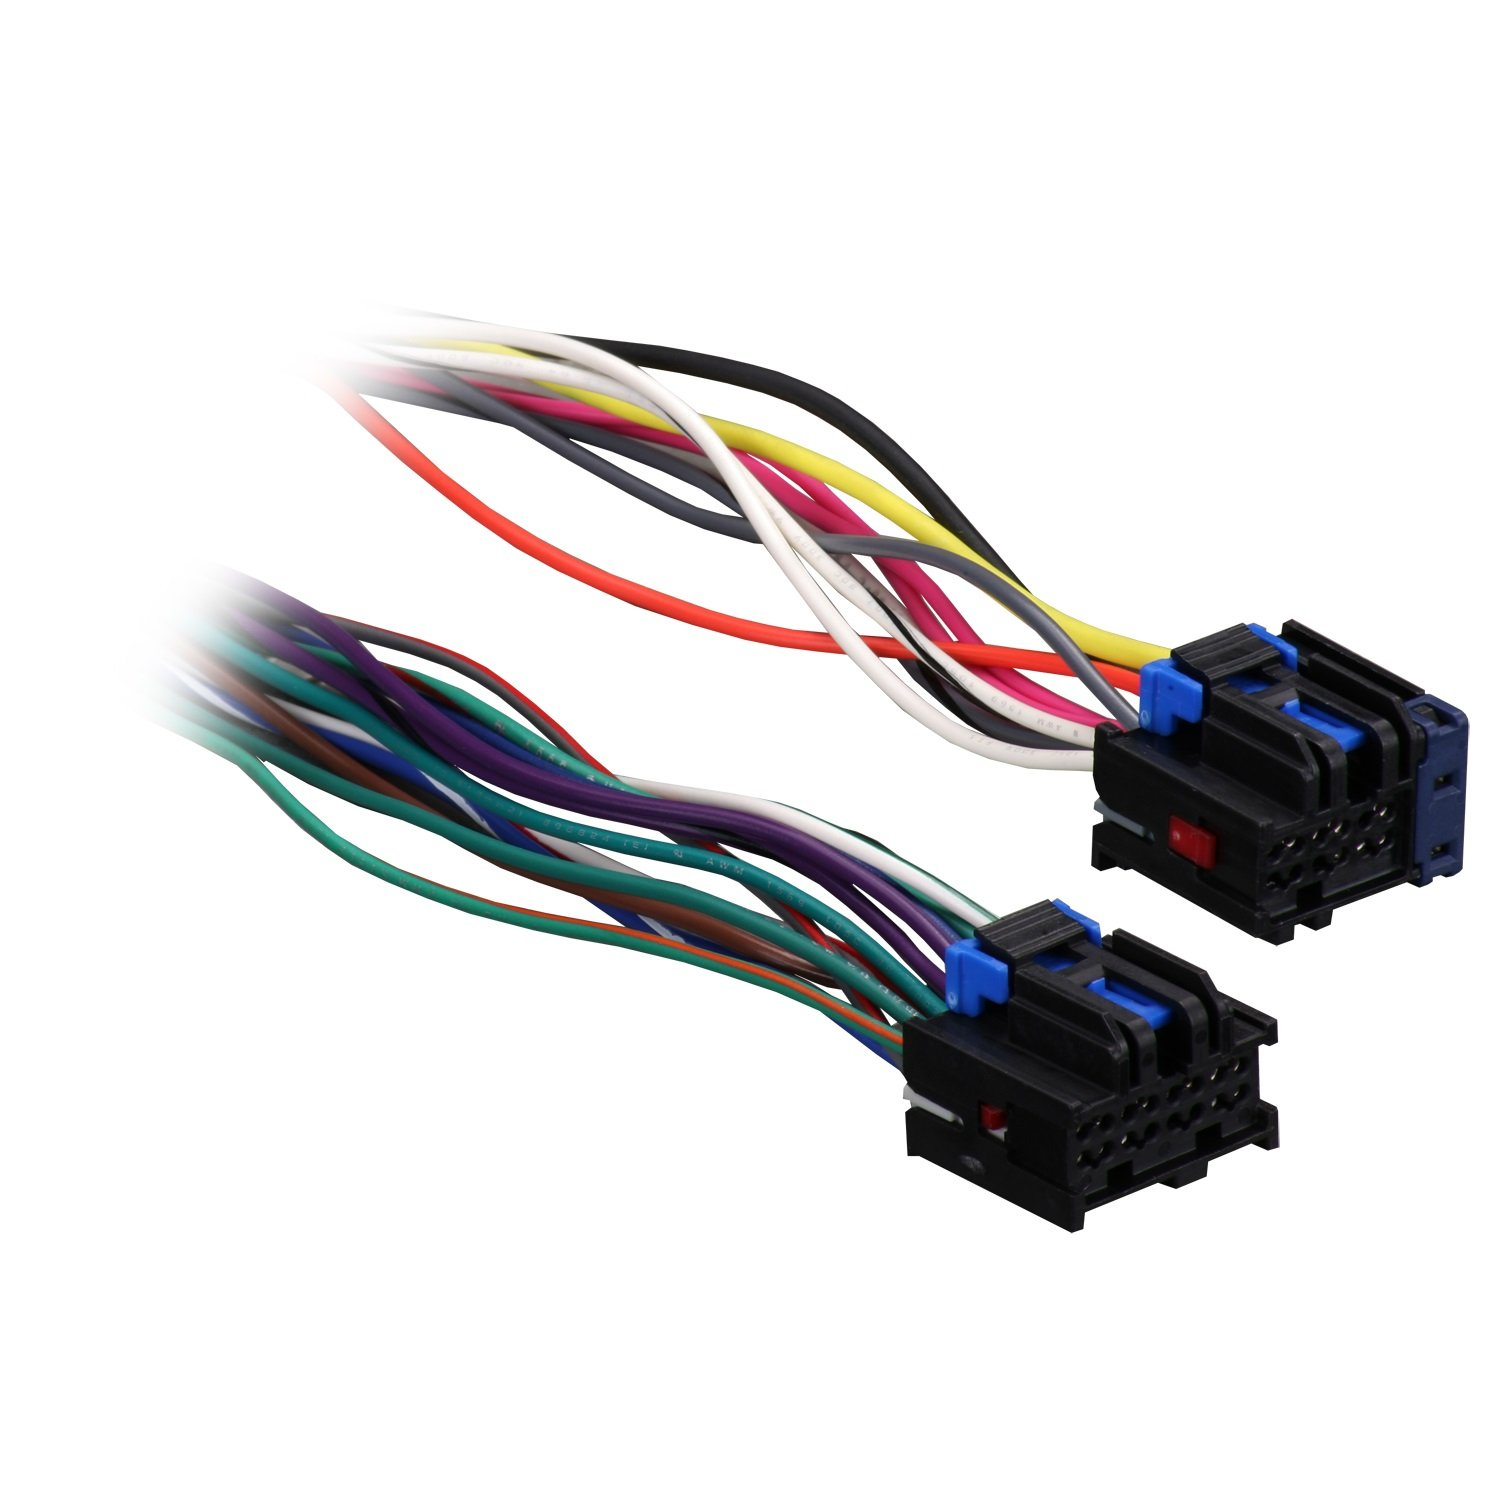 71iZfz2brnL._SL1500_ amazon com metra reverse wiring harness 71 2104 for select gm  at honlapkeszites.co